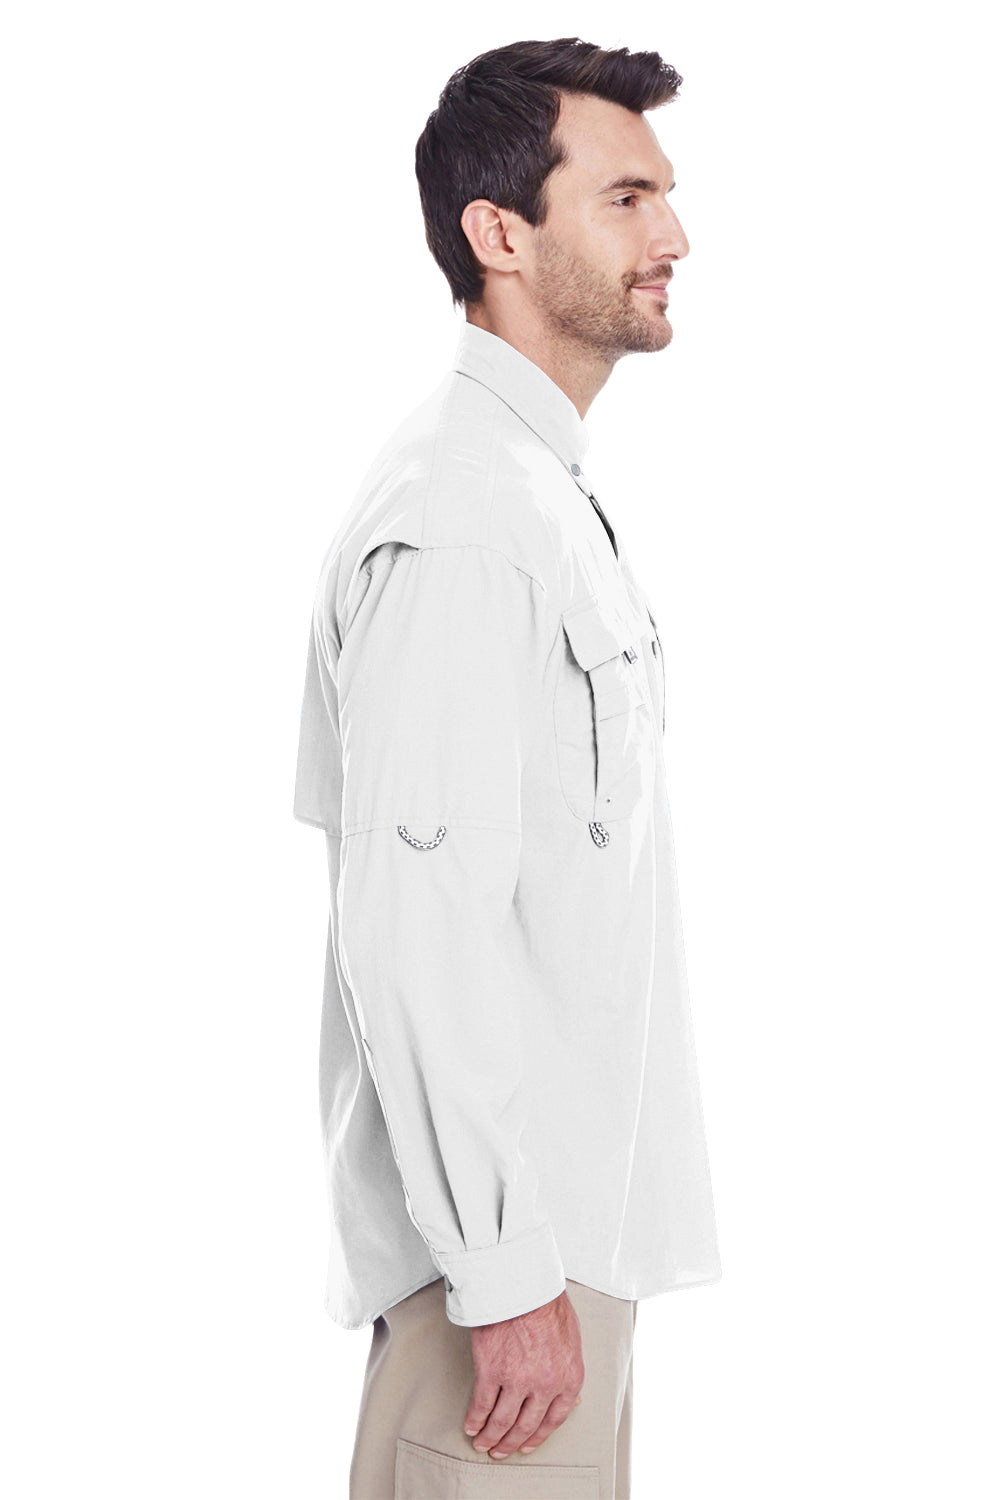 Columbia 7048 Mens Bahama II Moisture Wicking Long Sleeve Button Down Shirt w/ Double Pockets White Side